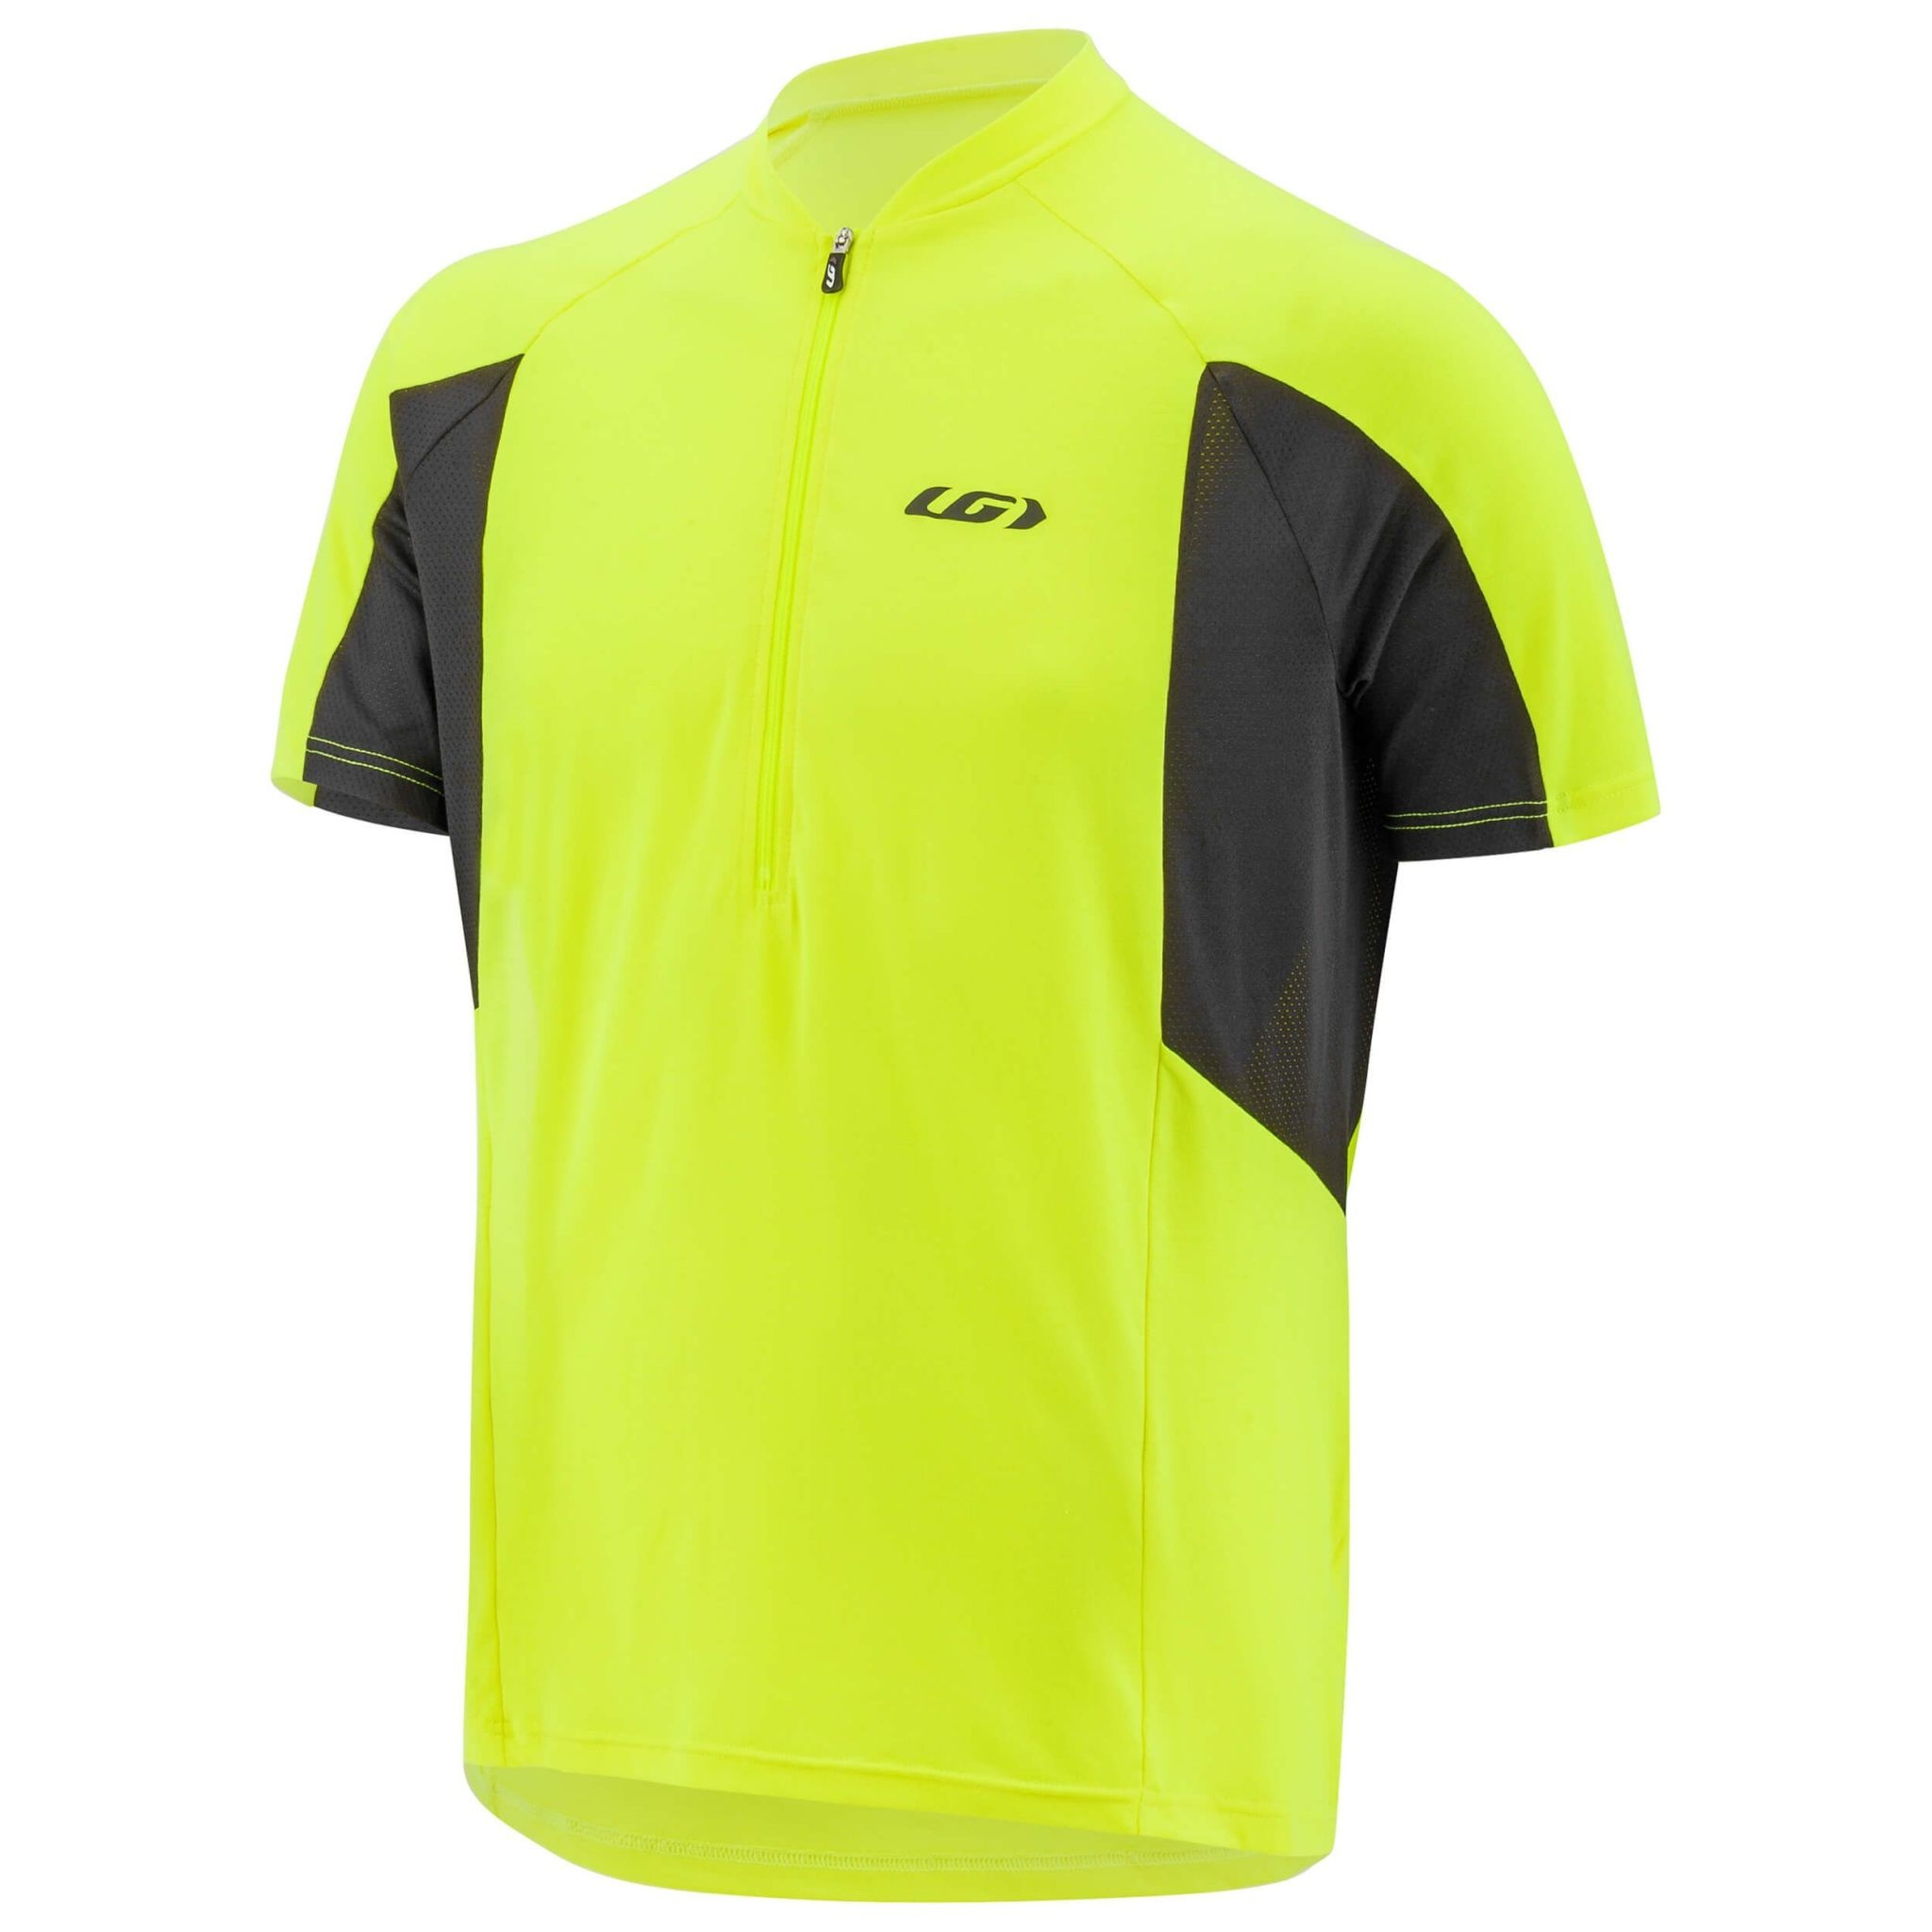 GARNEAU CONNECTION CYCLING JERSEY BRIGHT YELLOW XL